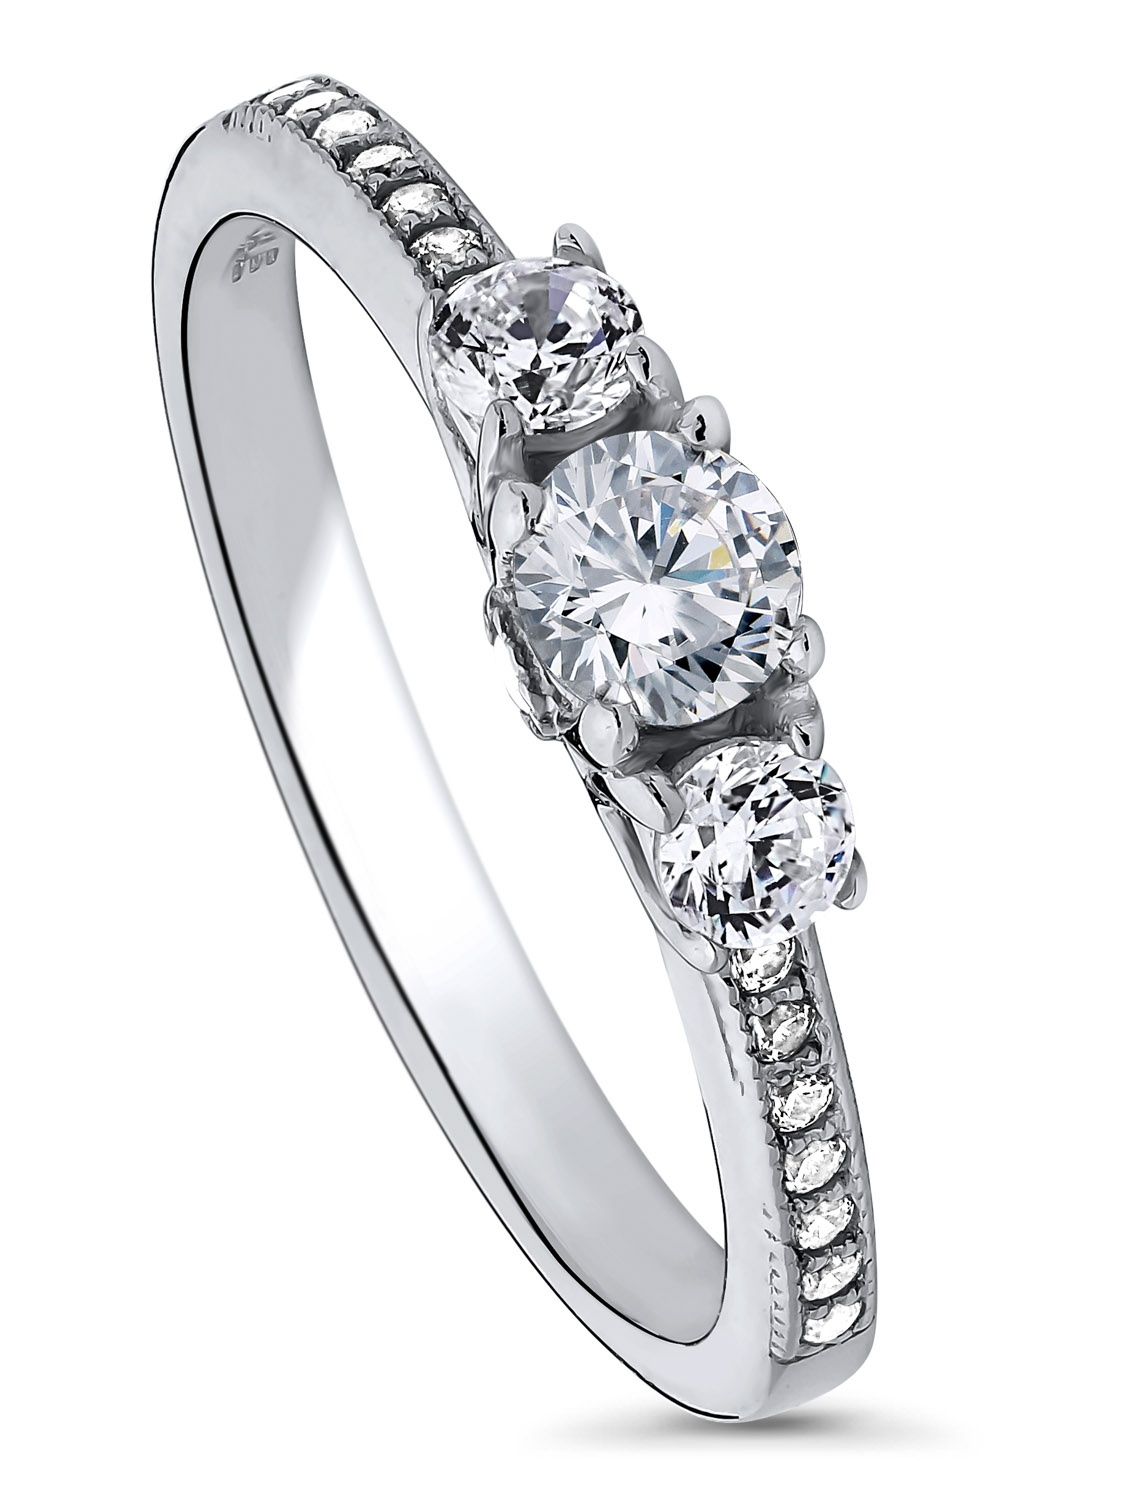 BERRICLE Rhodium Plated Sterling Silver Cubic Zirconia CZ 3-Stone Promise Engagement Ring Size 10.5